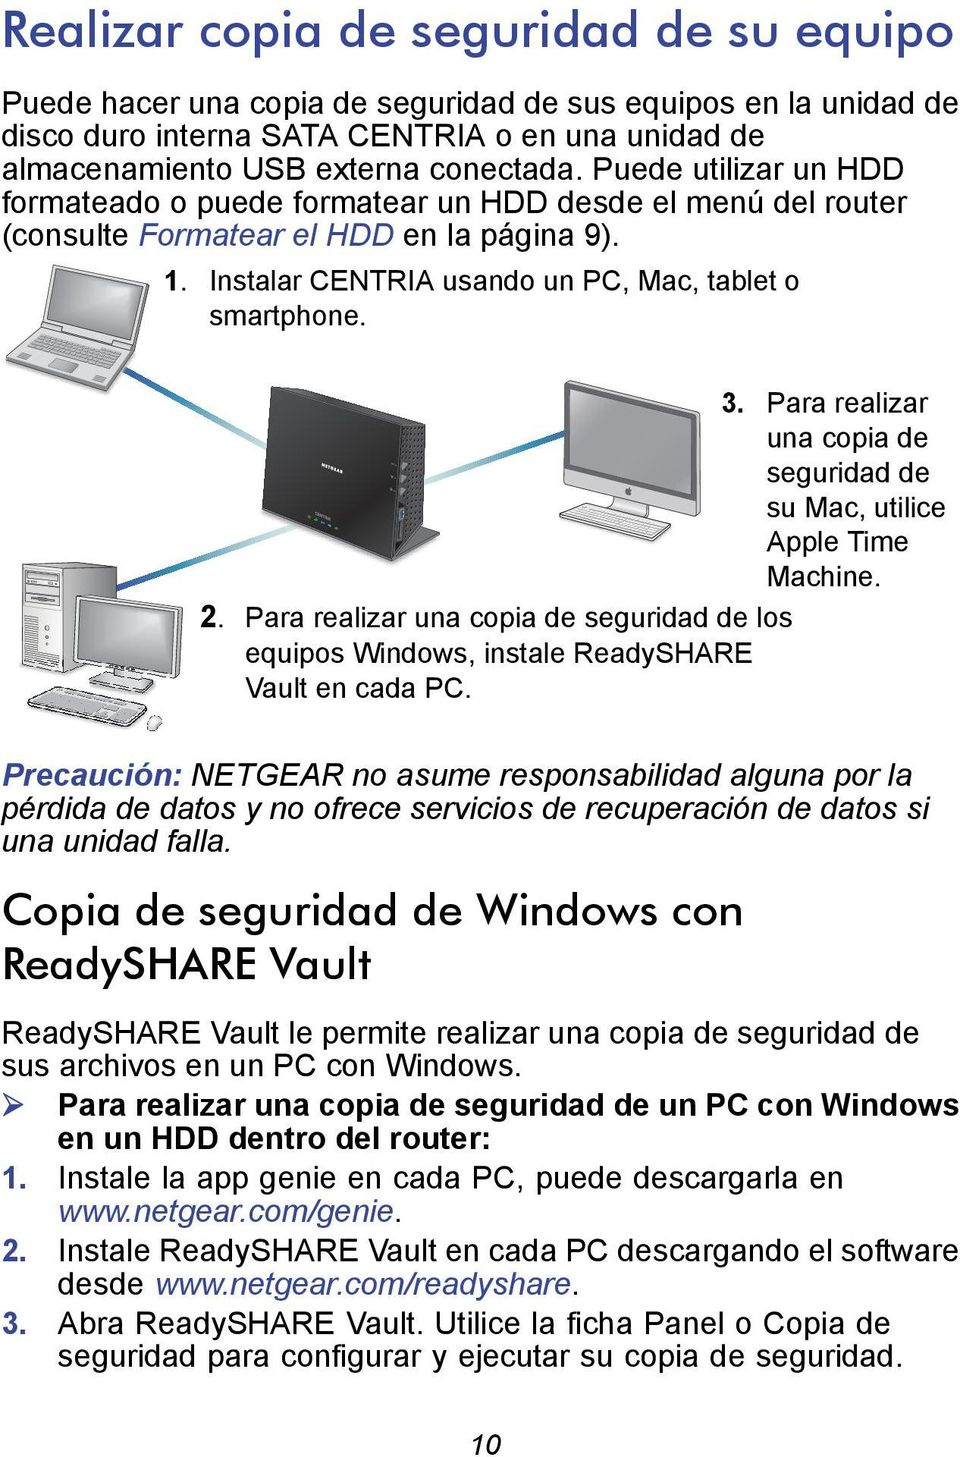 Para realizar una copia de seguridad de su Mac, utilice Apple Time Machine. 2. Para realizar una copia de seguridad de los equipos Windows, instale ReadySHARE Vault en cada PC.